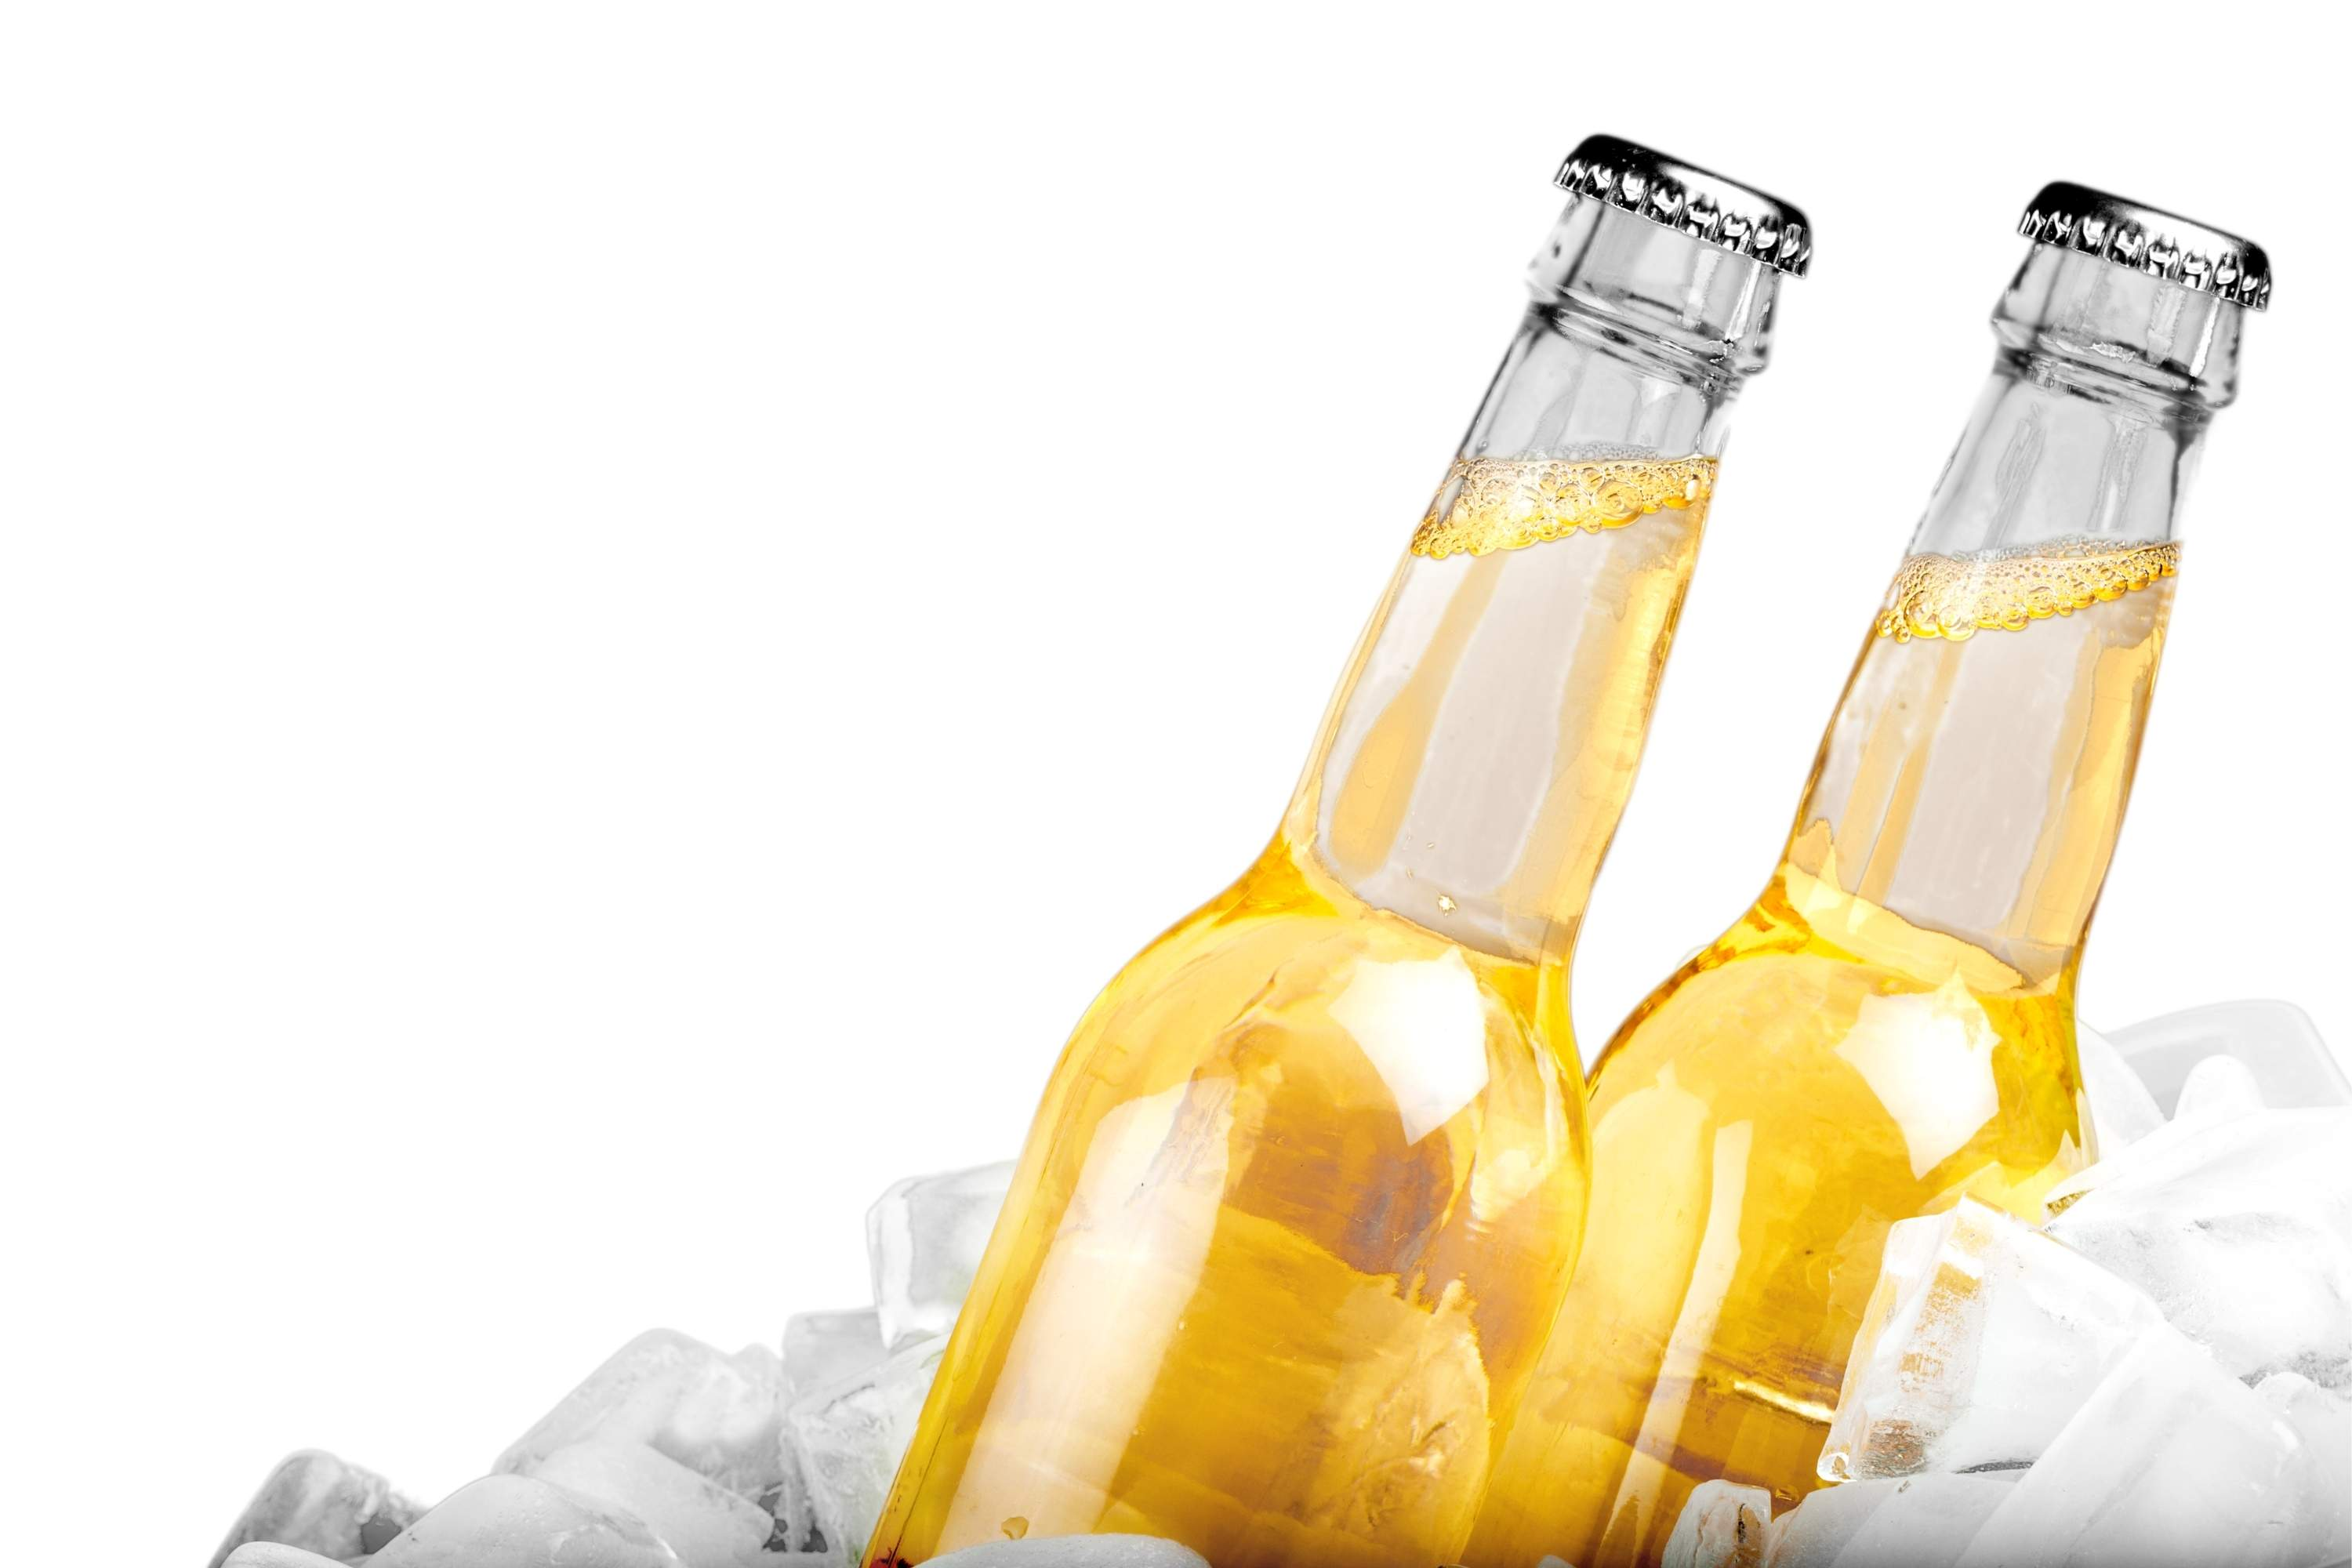 Storing Alcohol Outside In Winter. Things You Need to Know